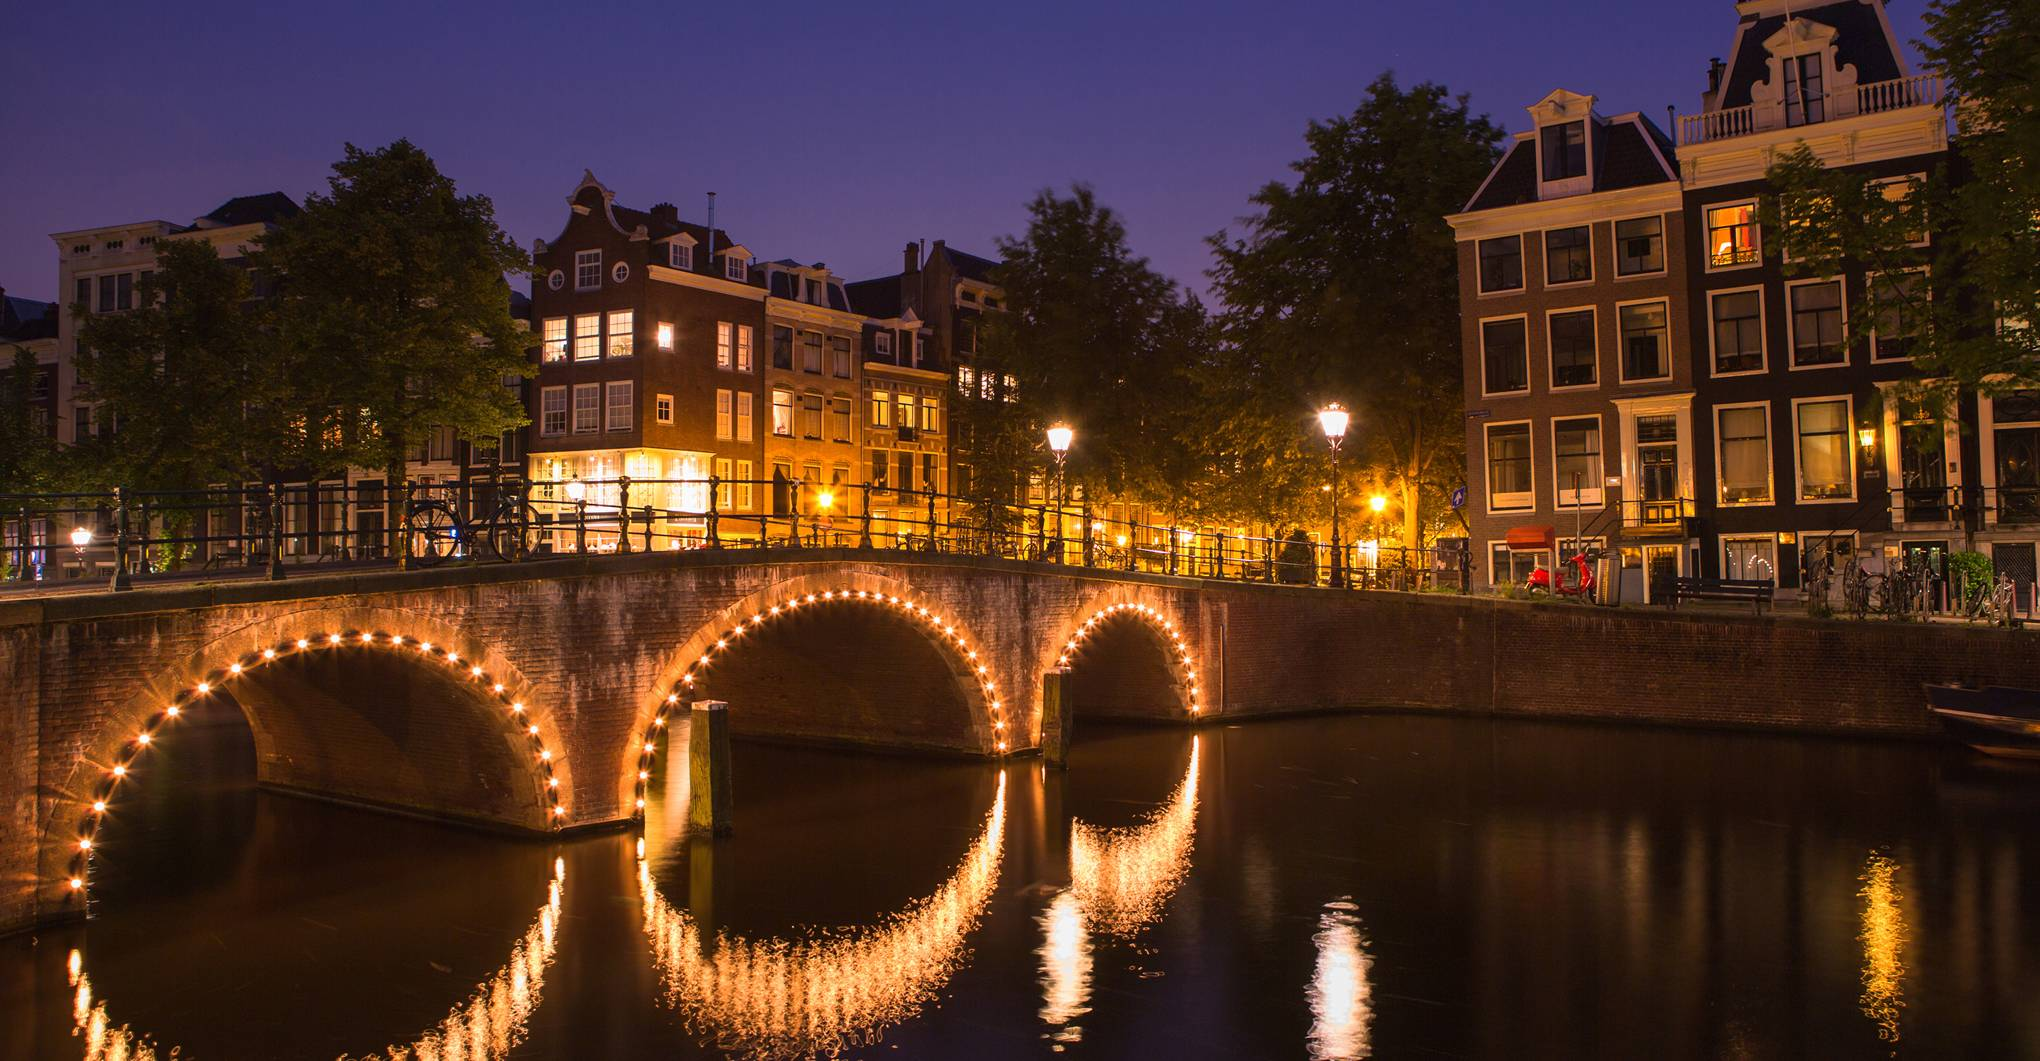 10 cool things to do in Amsterdam at night